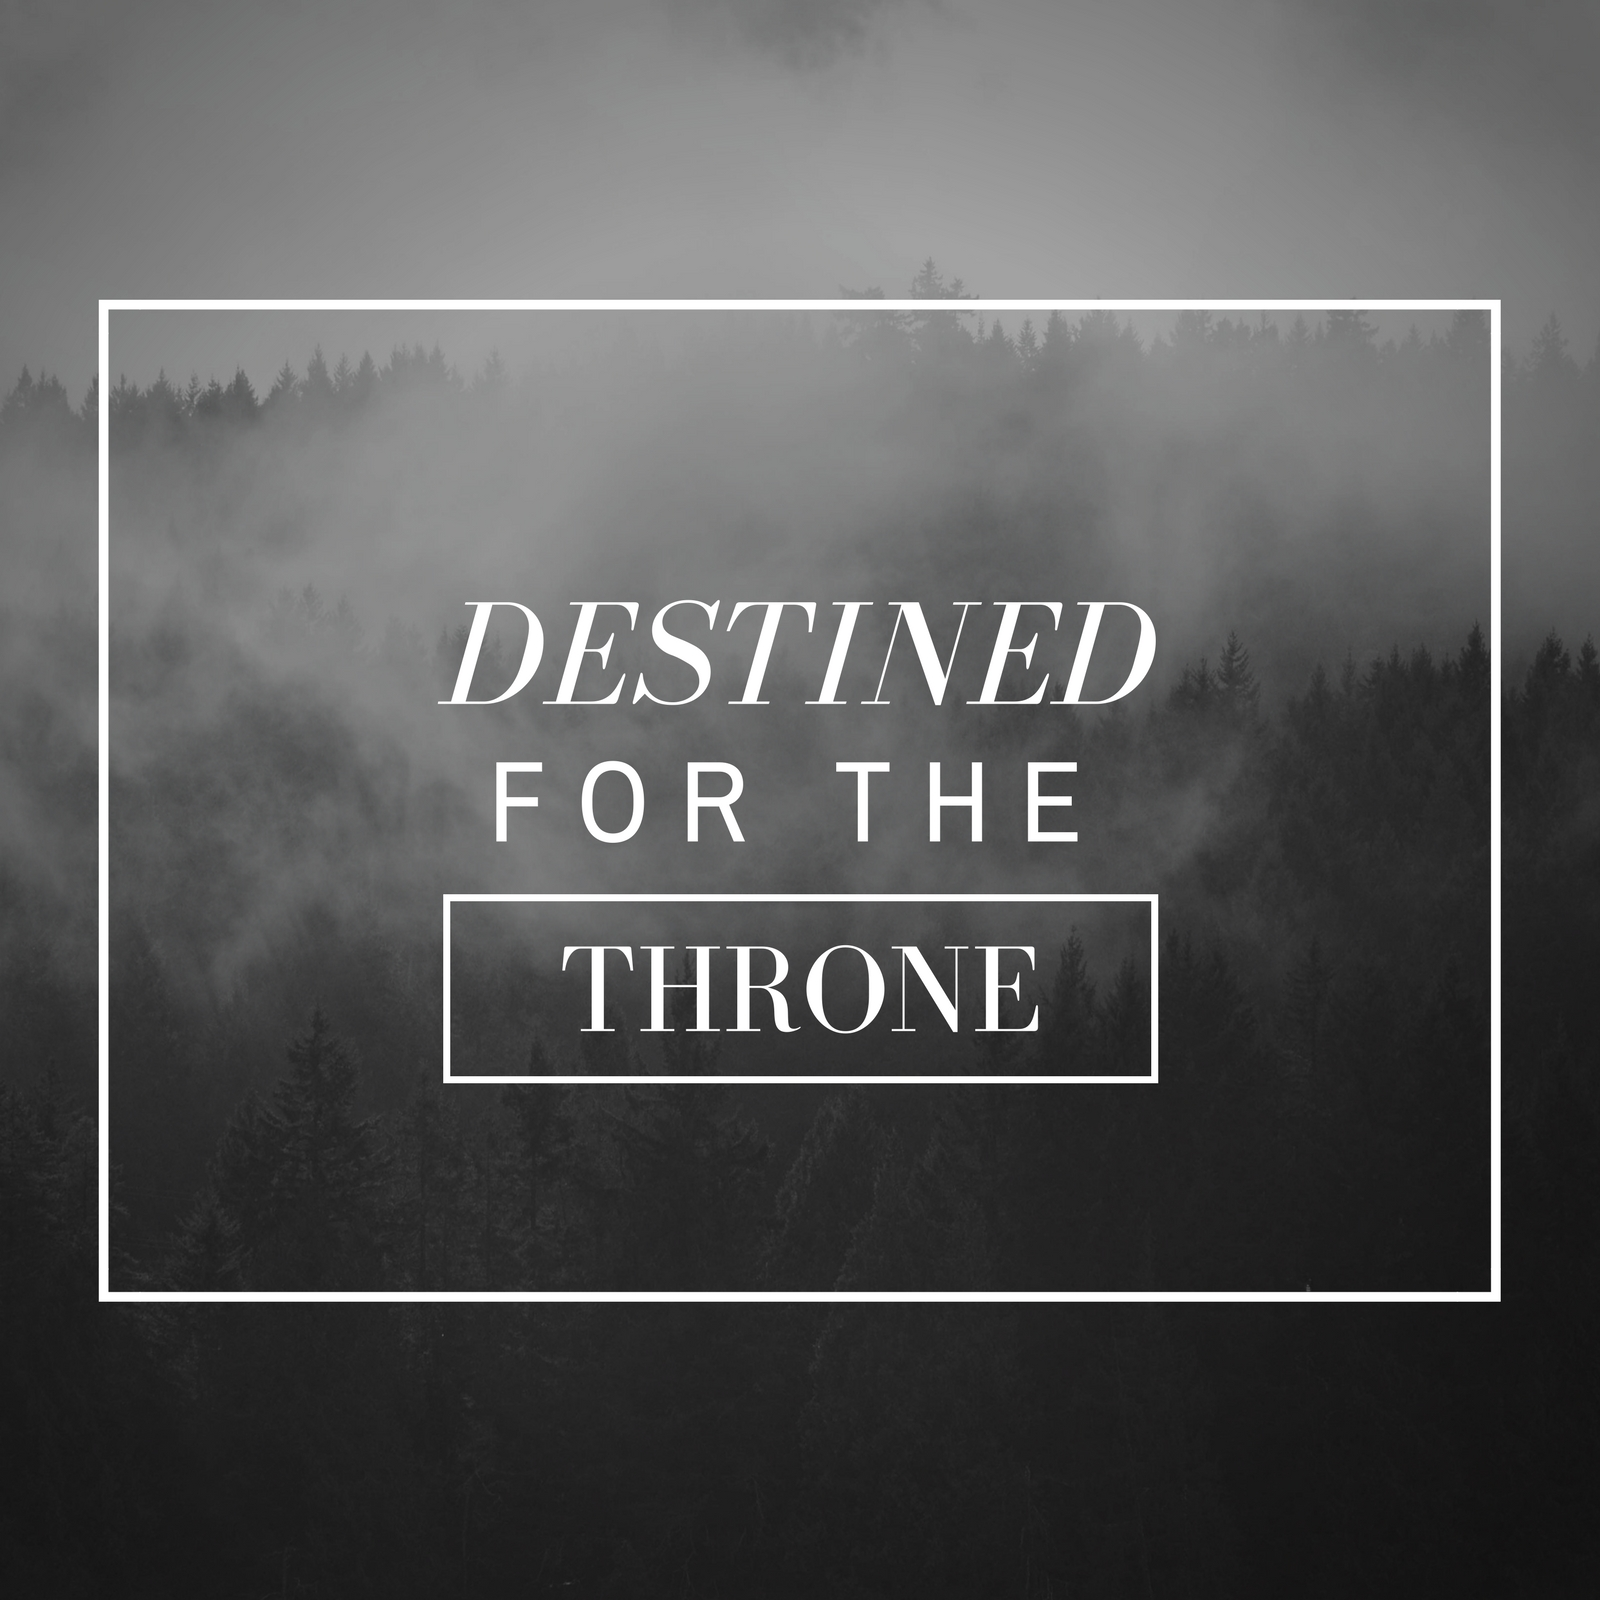 Destined for the Throne